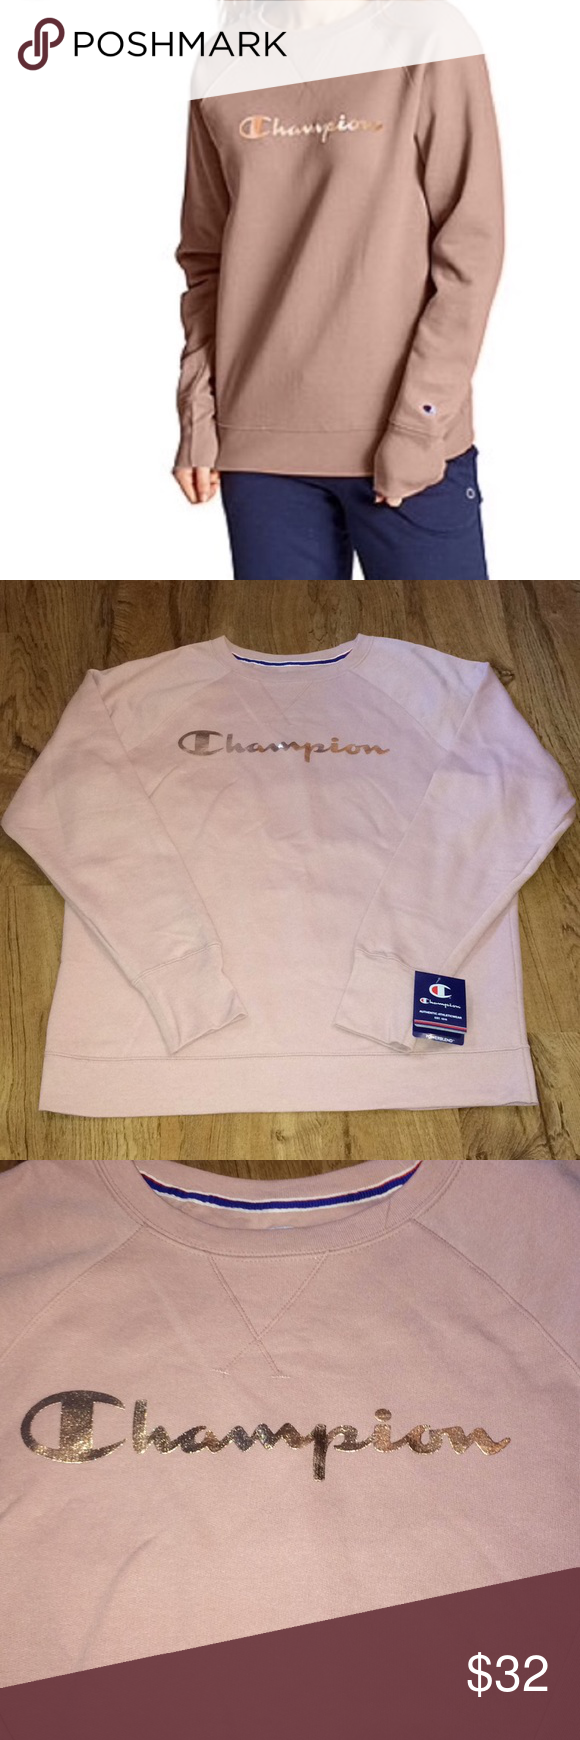 Champion Rose Gold Sweatshirt New With Tags Fast Shipping Price Is Firm Champion Rose Gold Pullover Sweatshirts Sweatshirt Tops Long Sleeve Tshirt Men [ 1740 x 580 Pixel ]